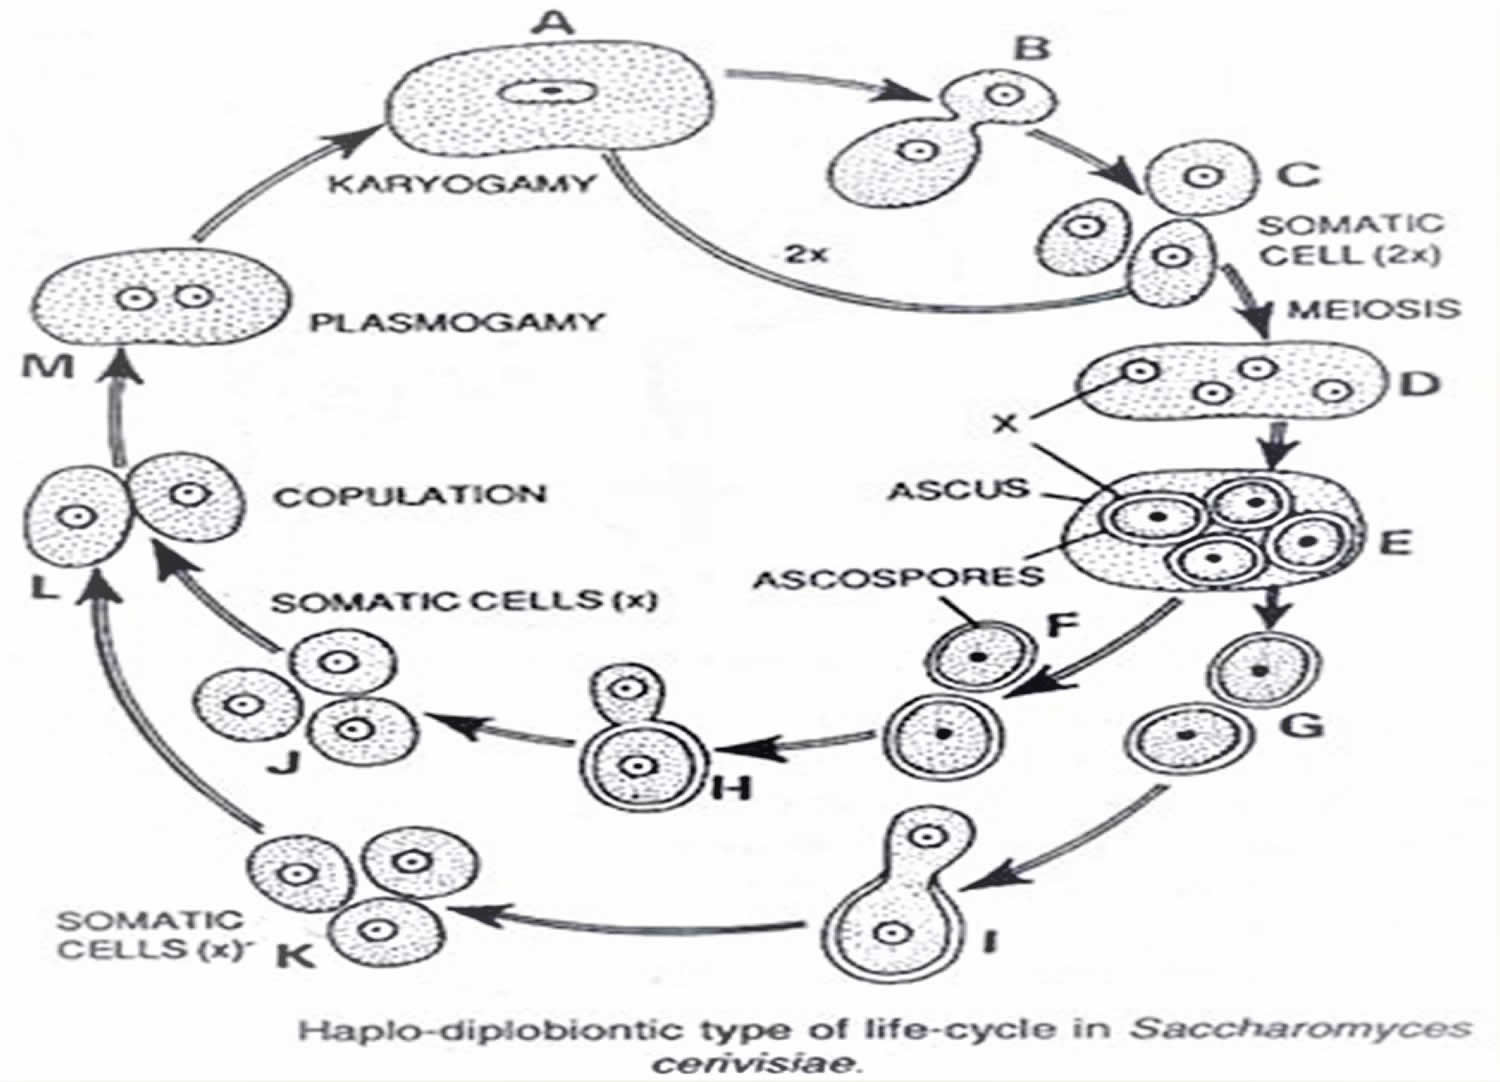 Saccharomyces Cerevisiae Probiotic Lifecycle Uses